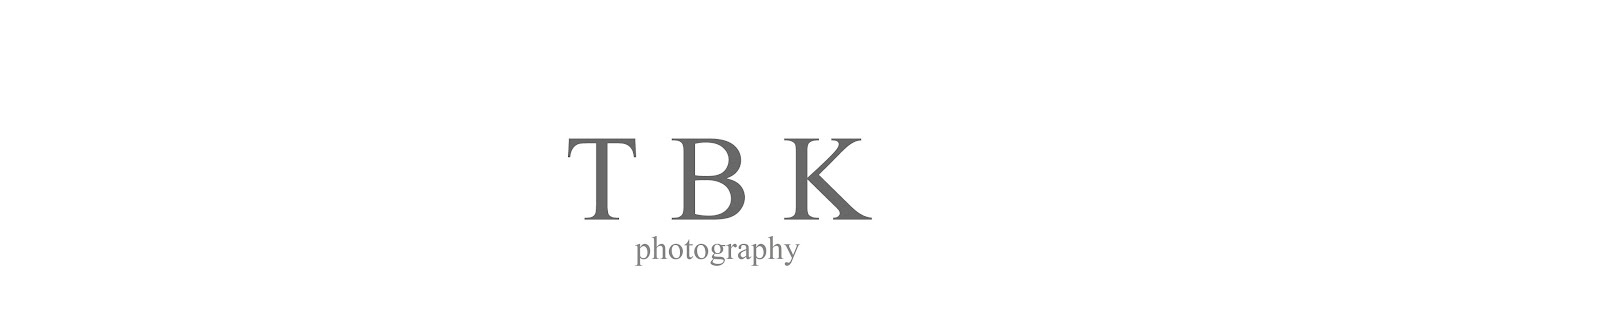 Tbk photography